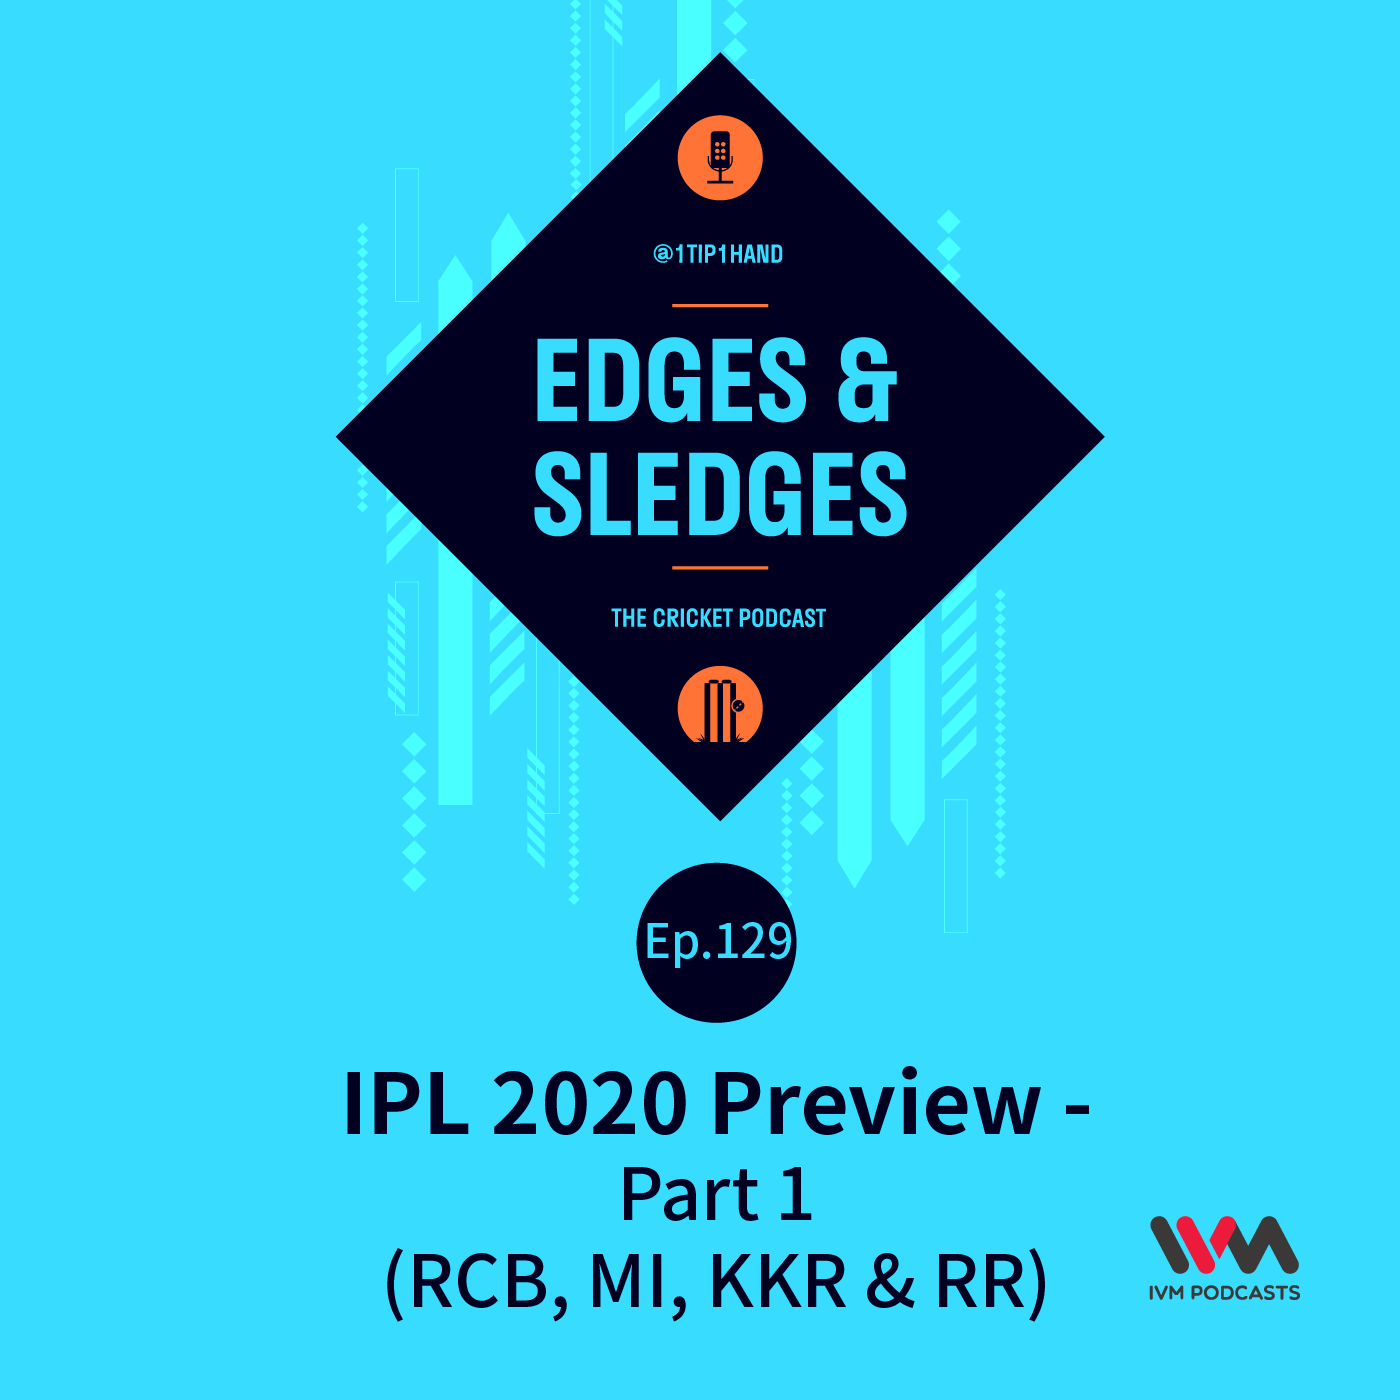 Ep. 129: IPL 2020 Preview - Part 1 (RCB, MI, KKR & RR)